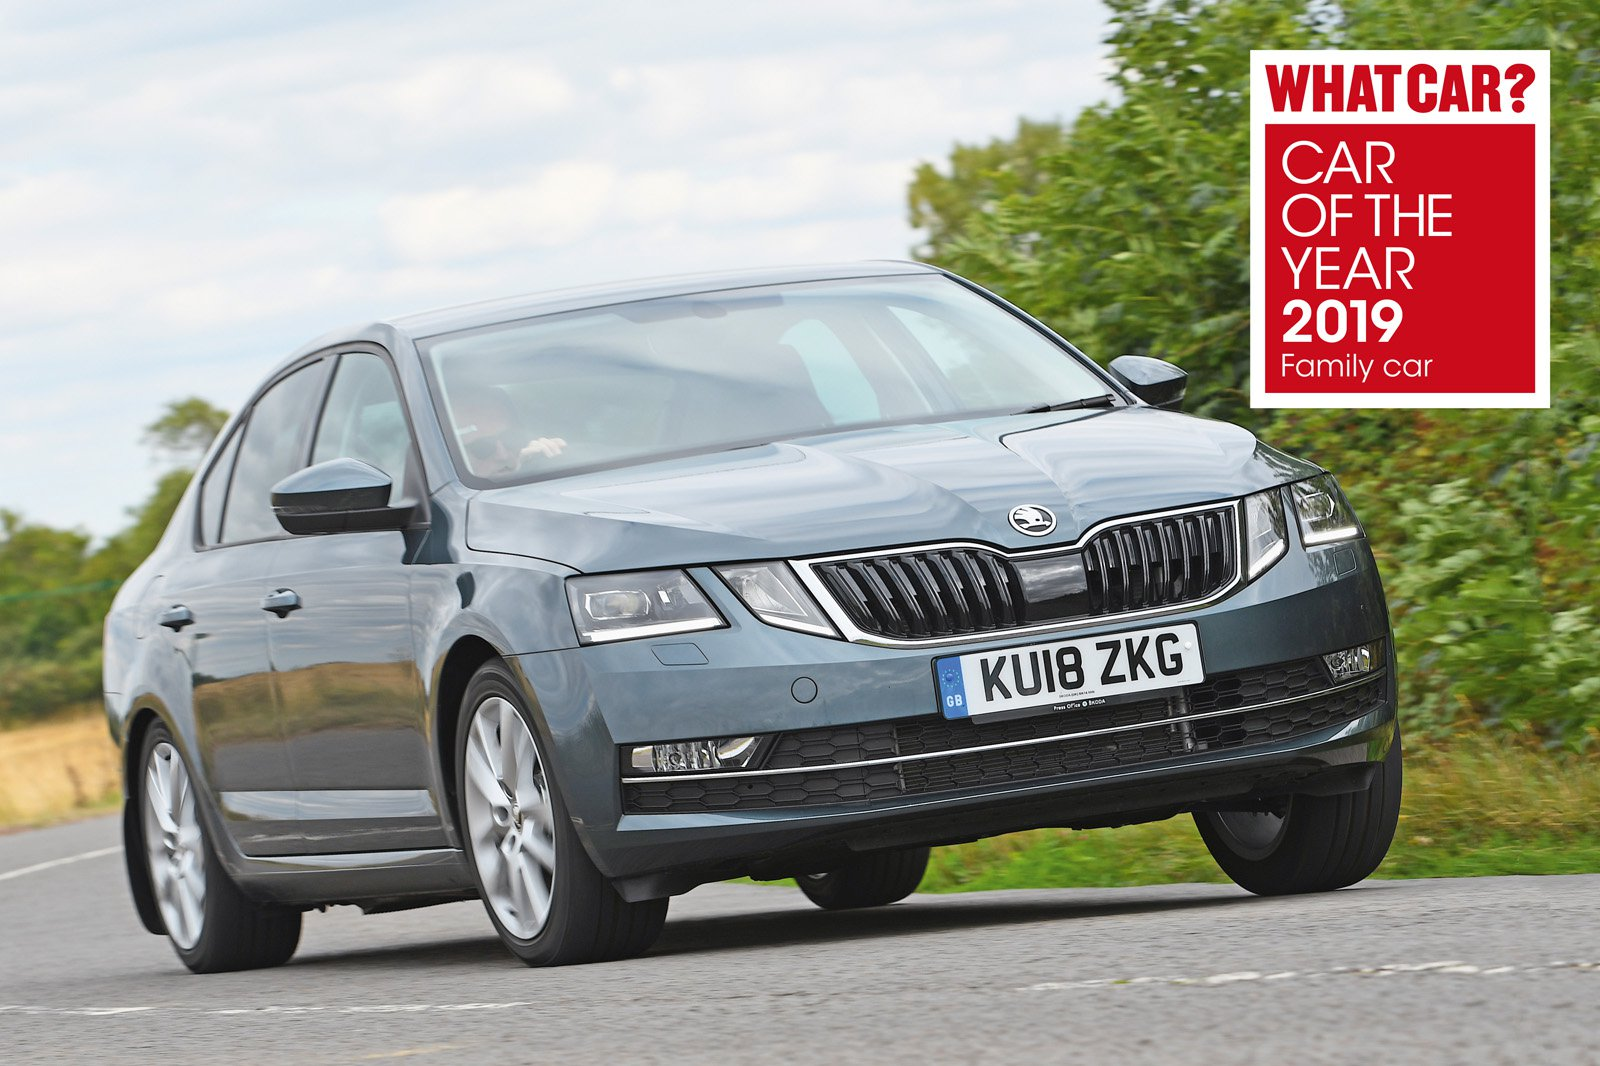 Skoda Octavia Review 2019 | What Car?